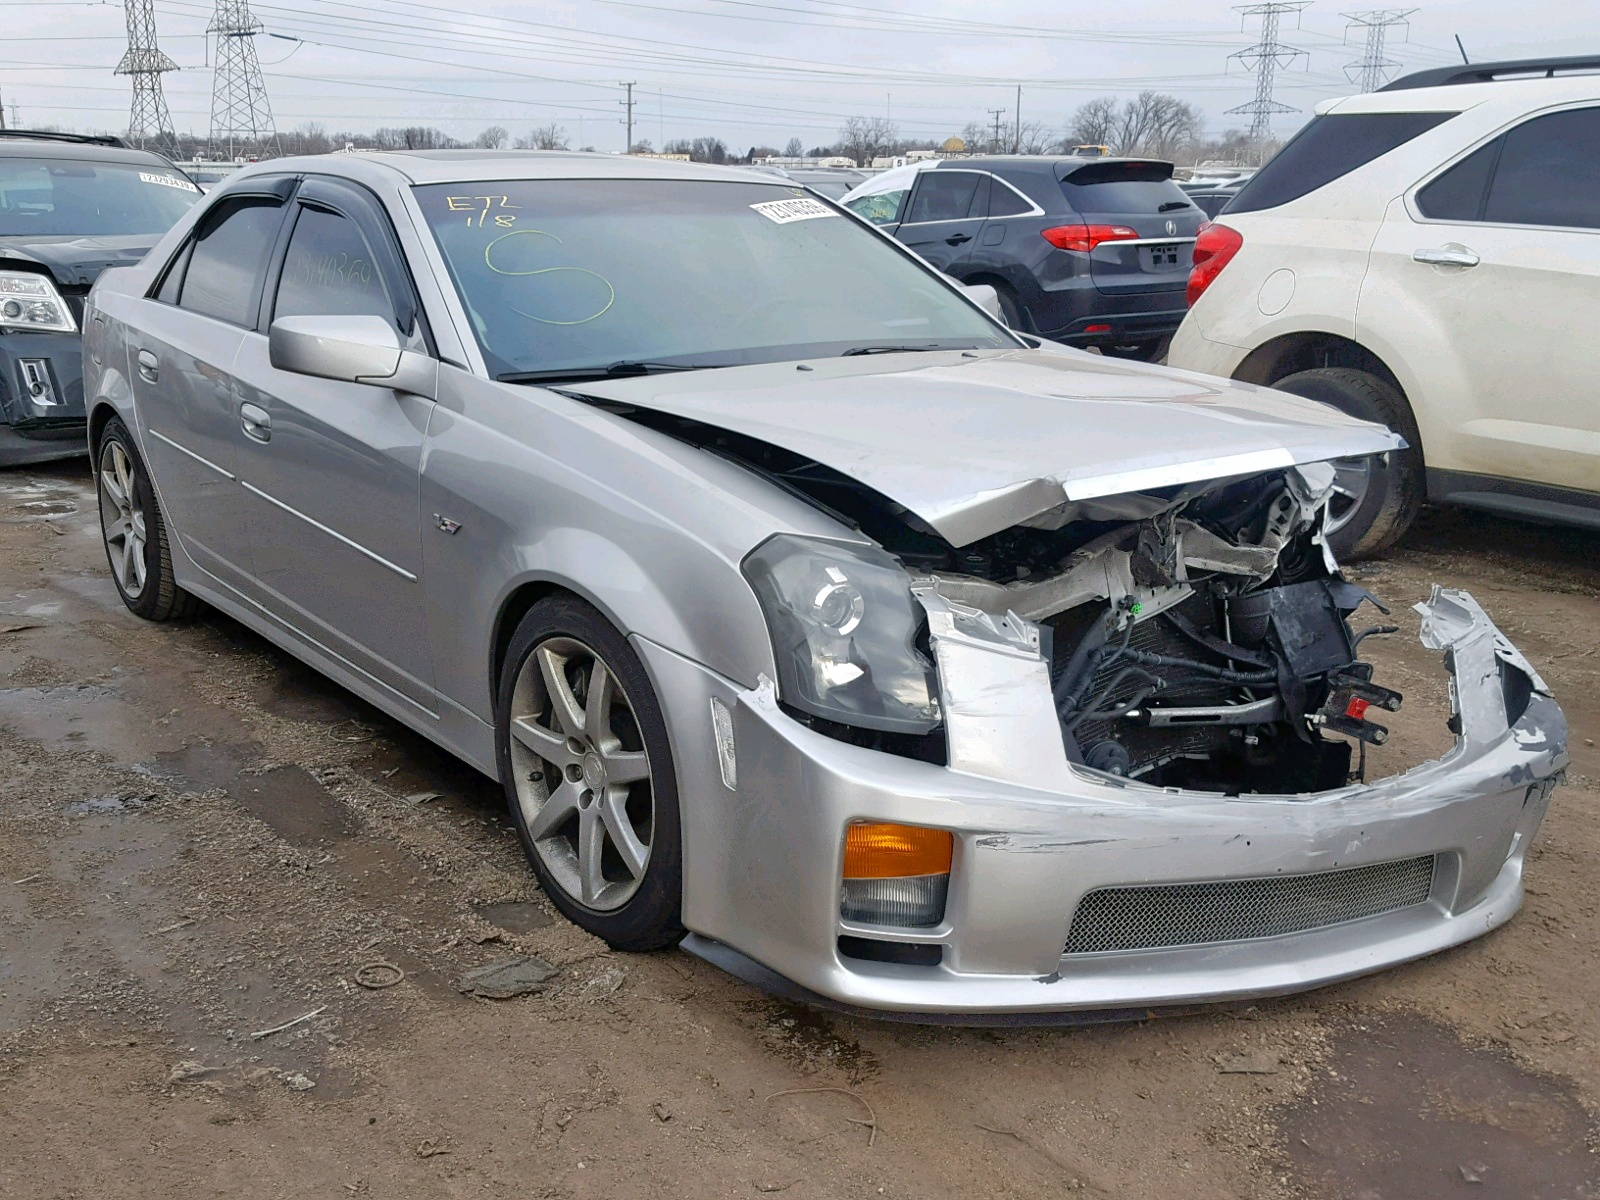 2005 Cadillac Cts V For Sale At Copart Elgin Il Lot 23140359